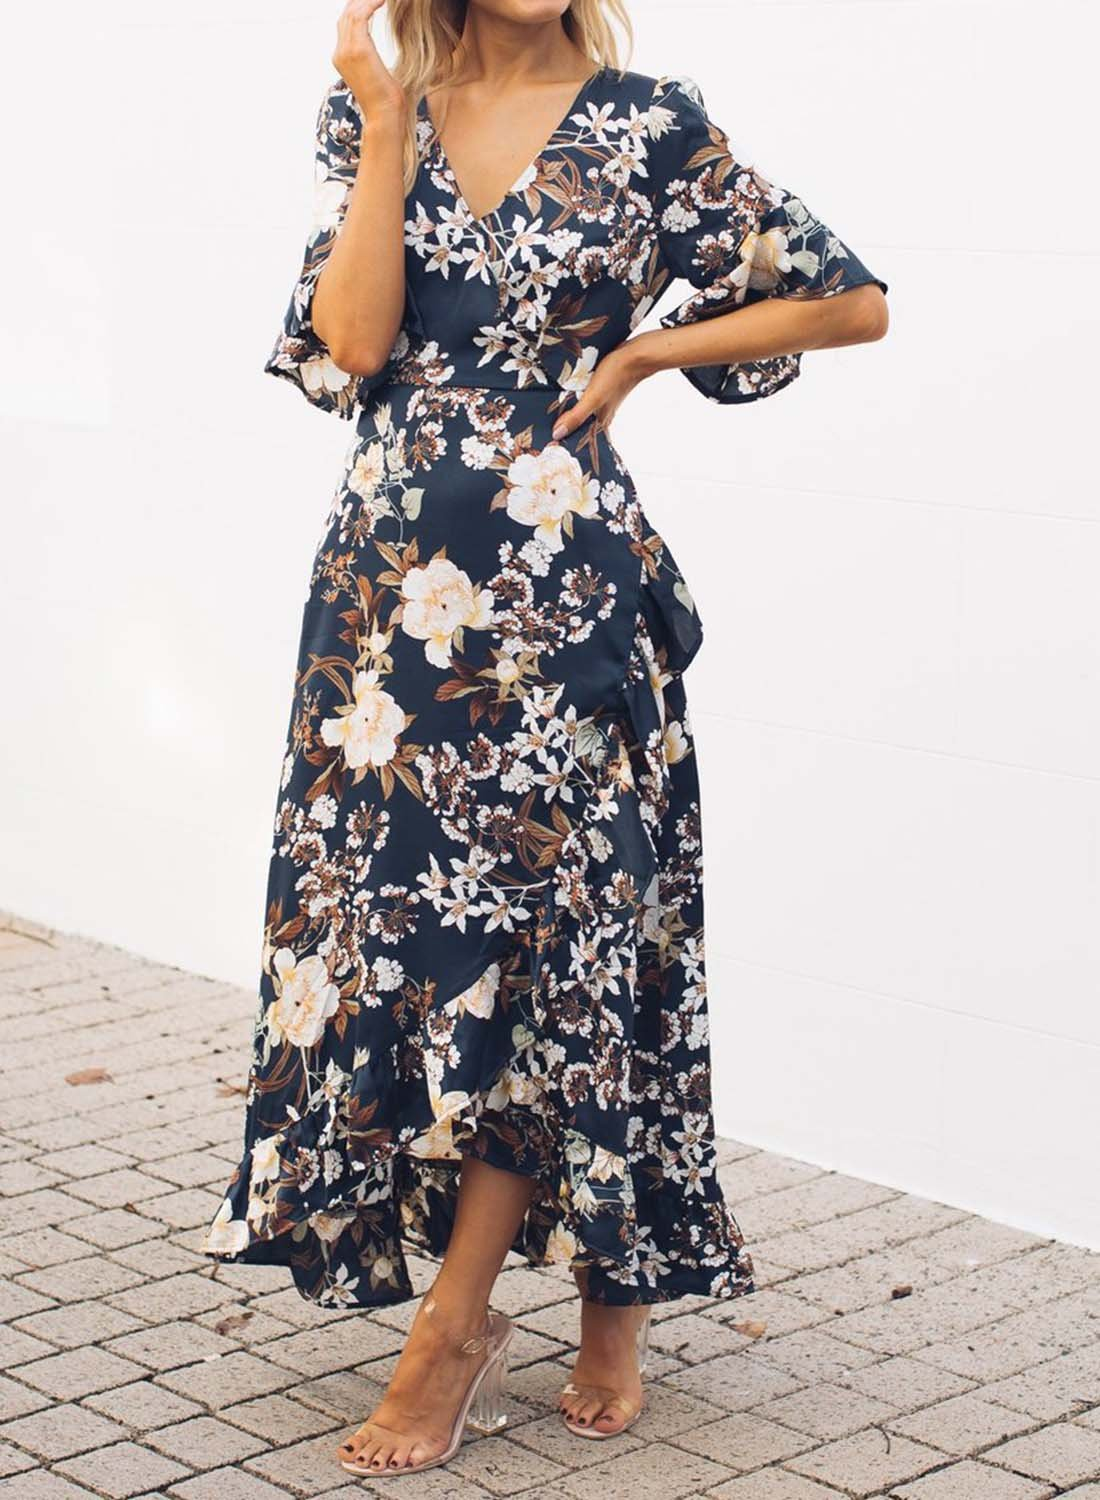 Short Sleeve Floral Print Maxi Dress choichic.com